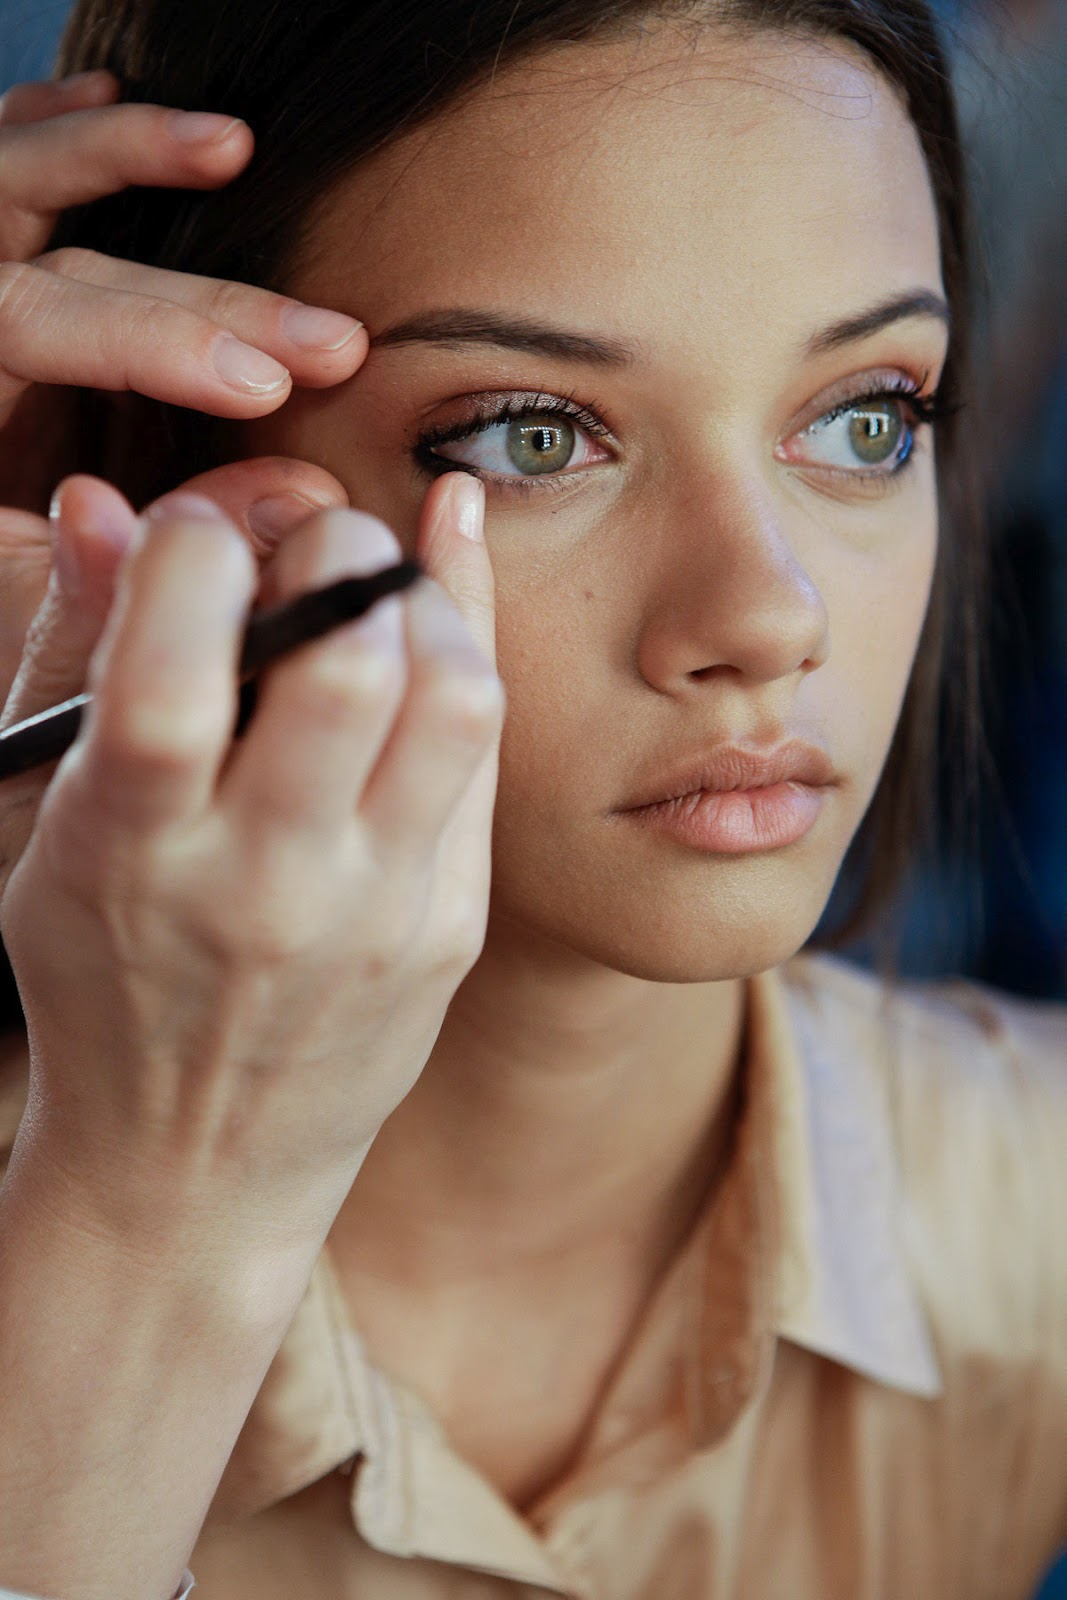 Pretty Makeup With The Eye Glitters 2052994: HOT Or NOT: Newcomers: Marina Nery